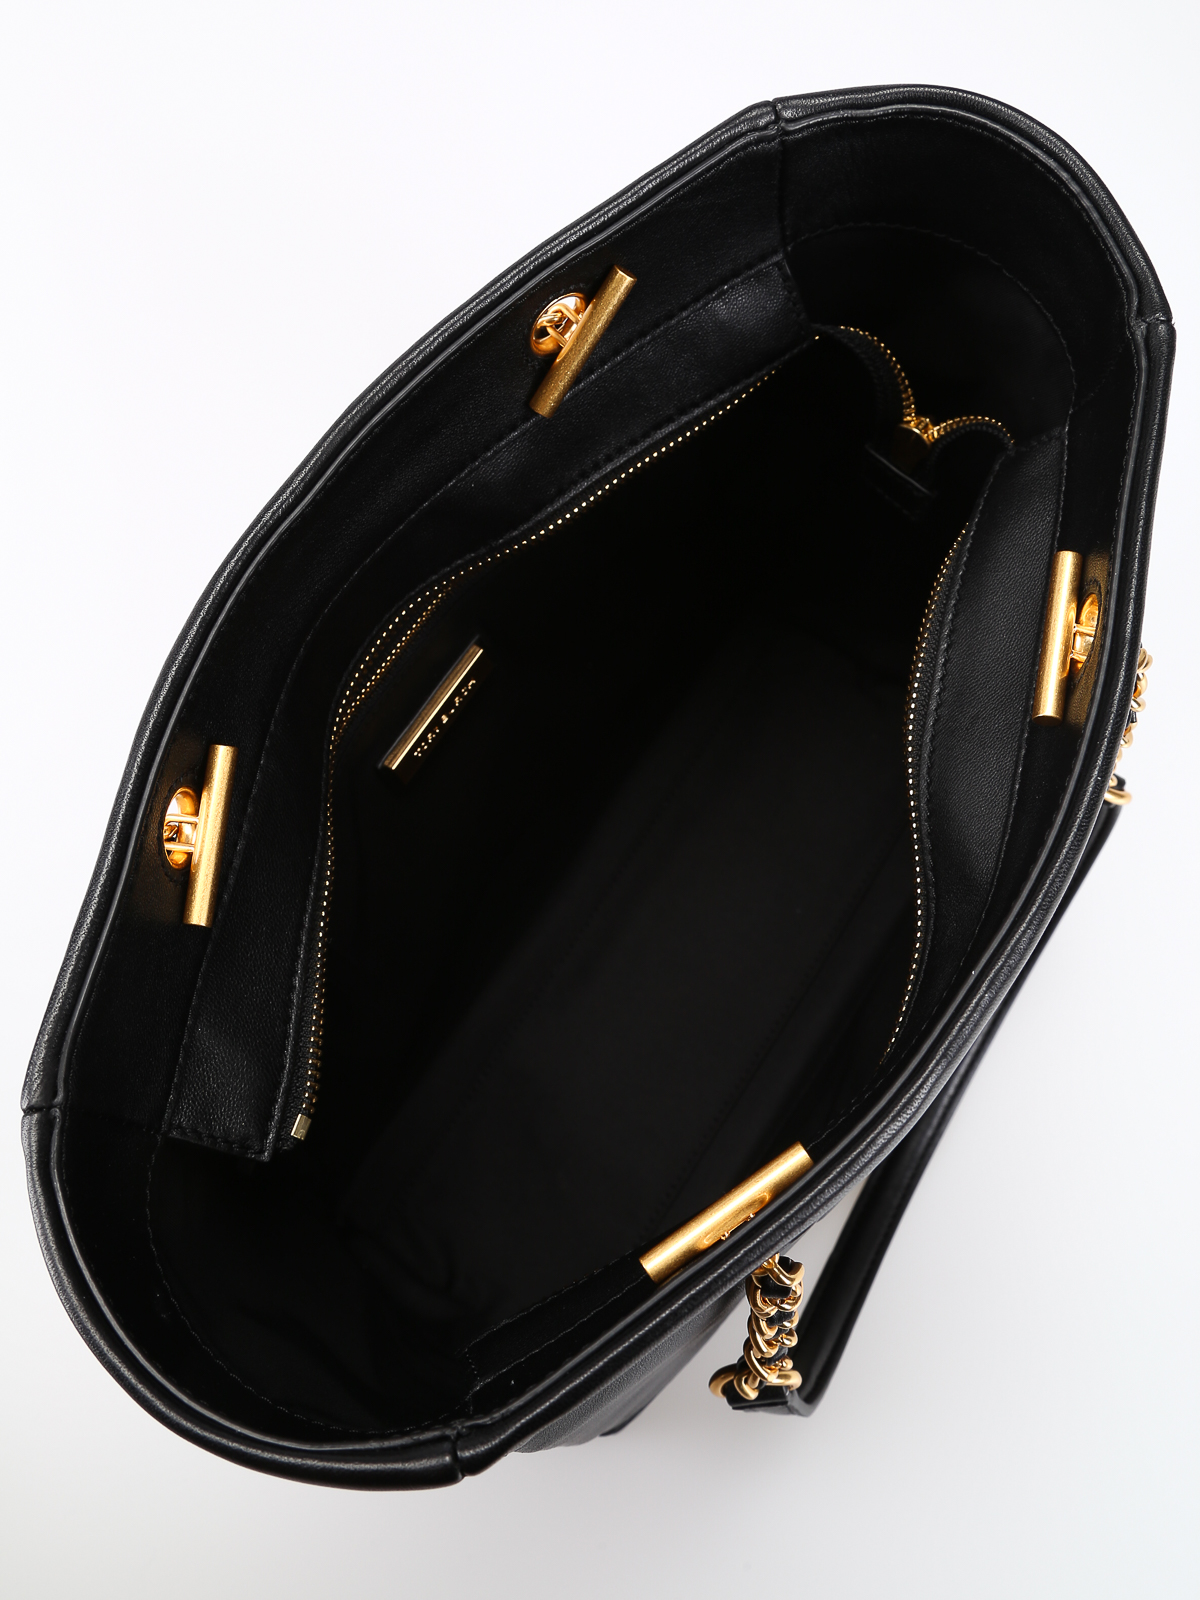 230f14fa927 TORY BURCH buy online Fleming golden chain black leather tote bag · TORY  BURCH  totes bags ...